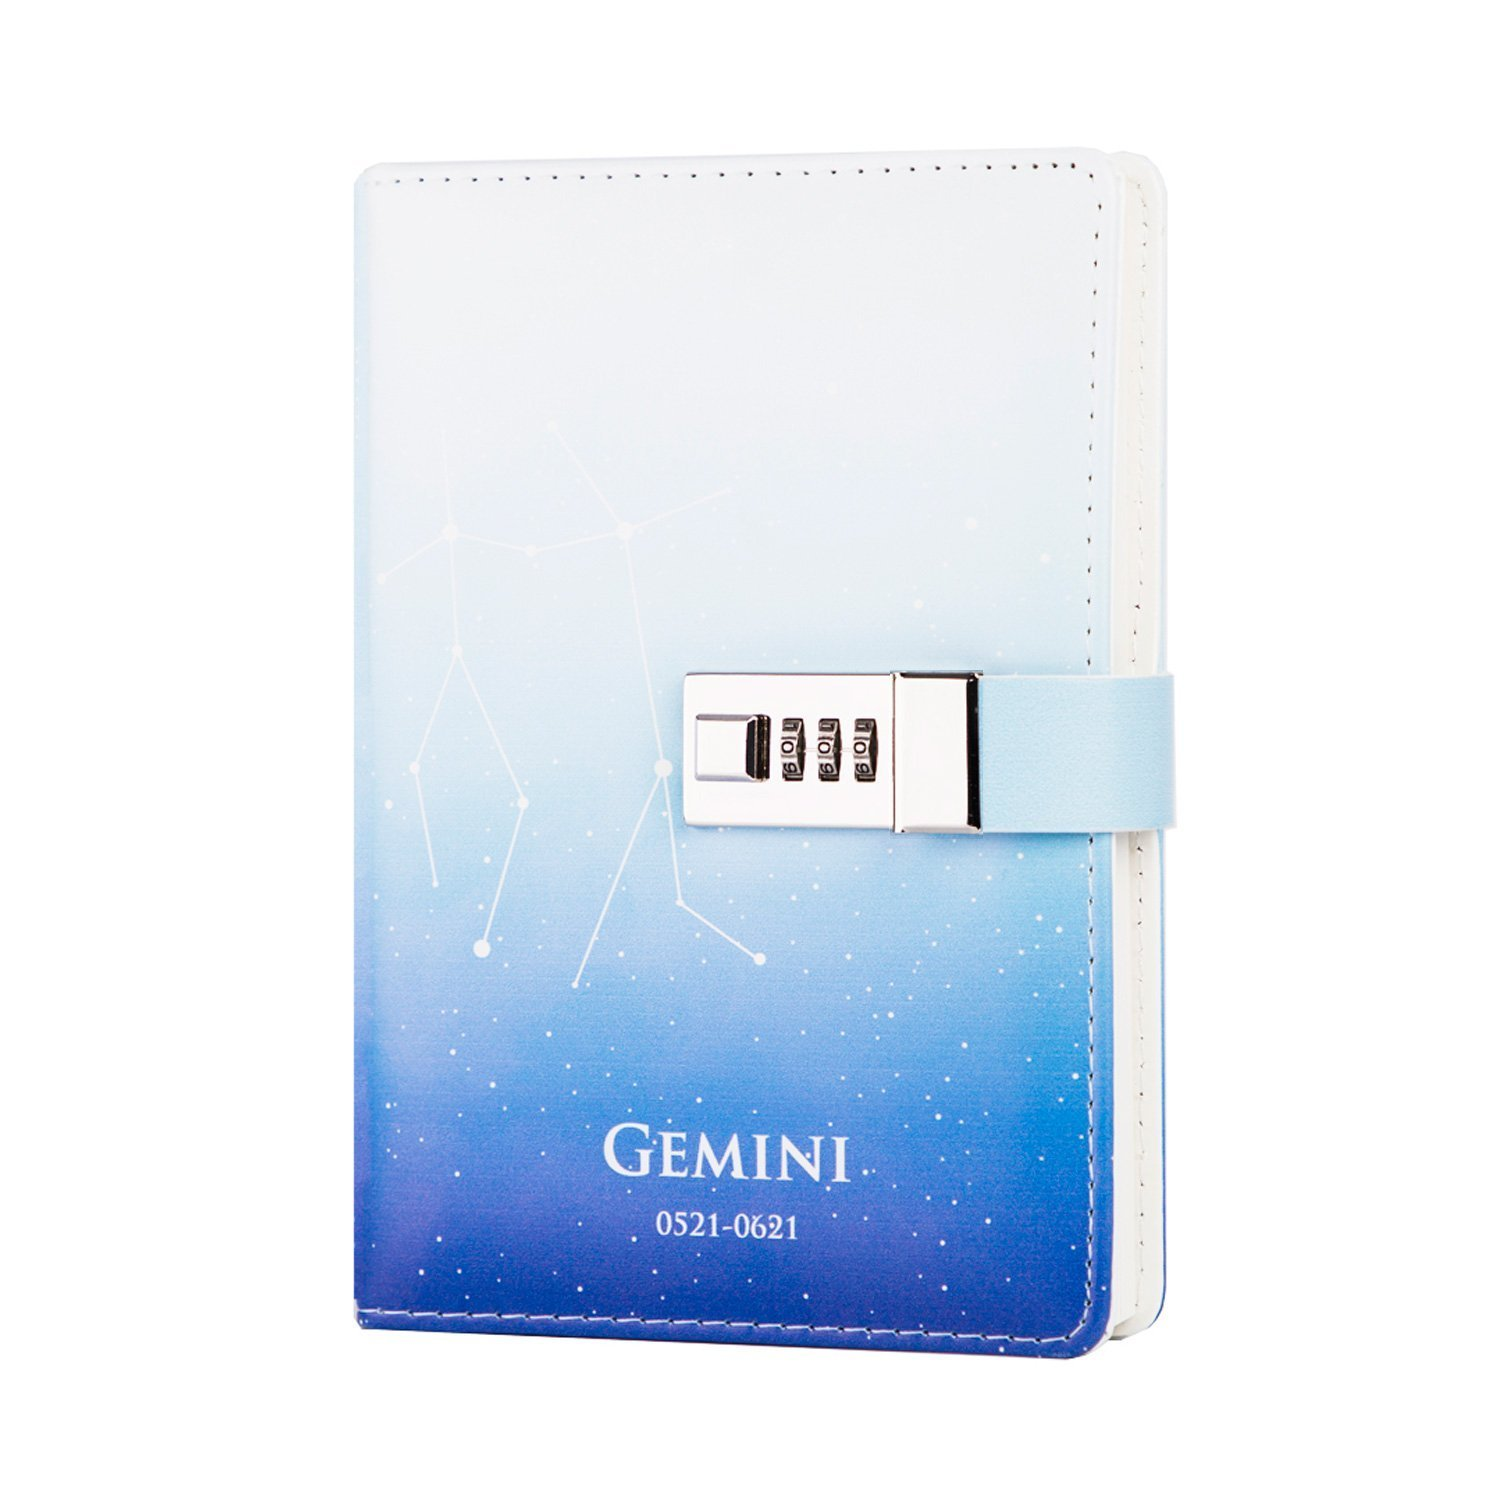 ToiM 12 Constellations PU Leather Journal Writing Notebook Daily Notepad with Combination Lock, B6 Password Diary (Gemini)